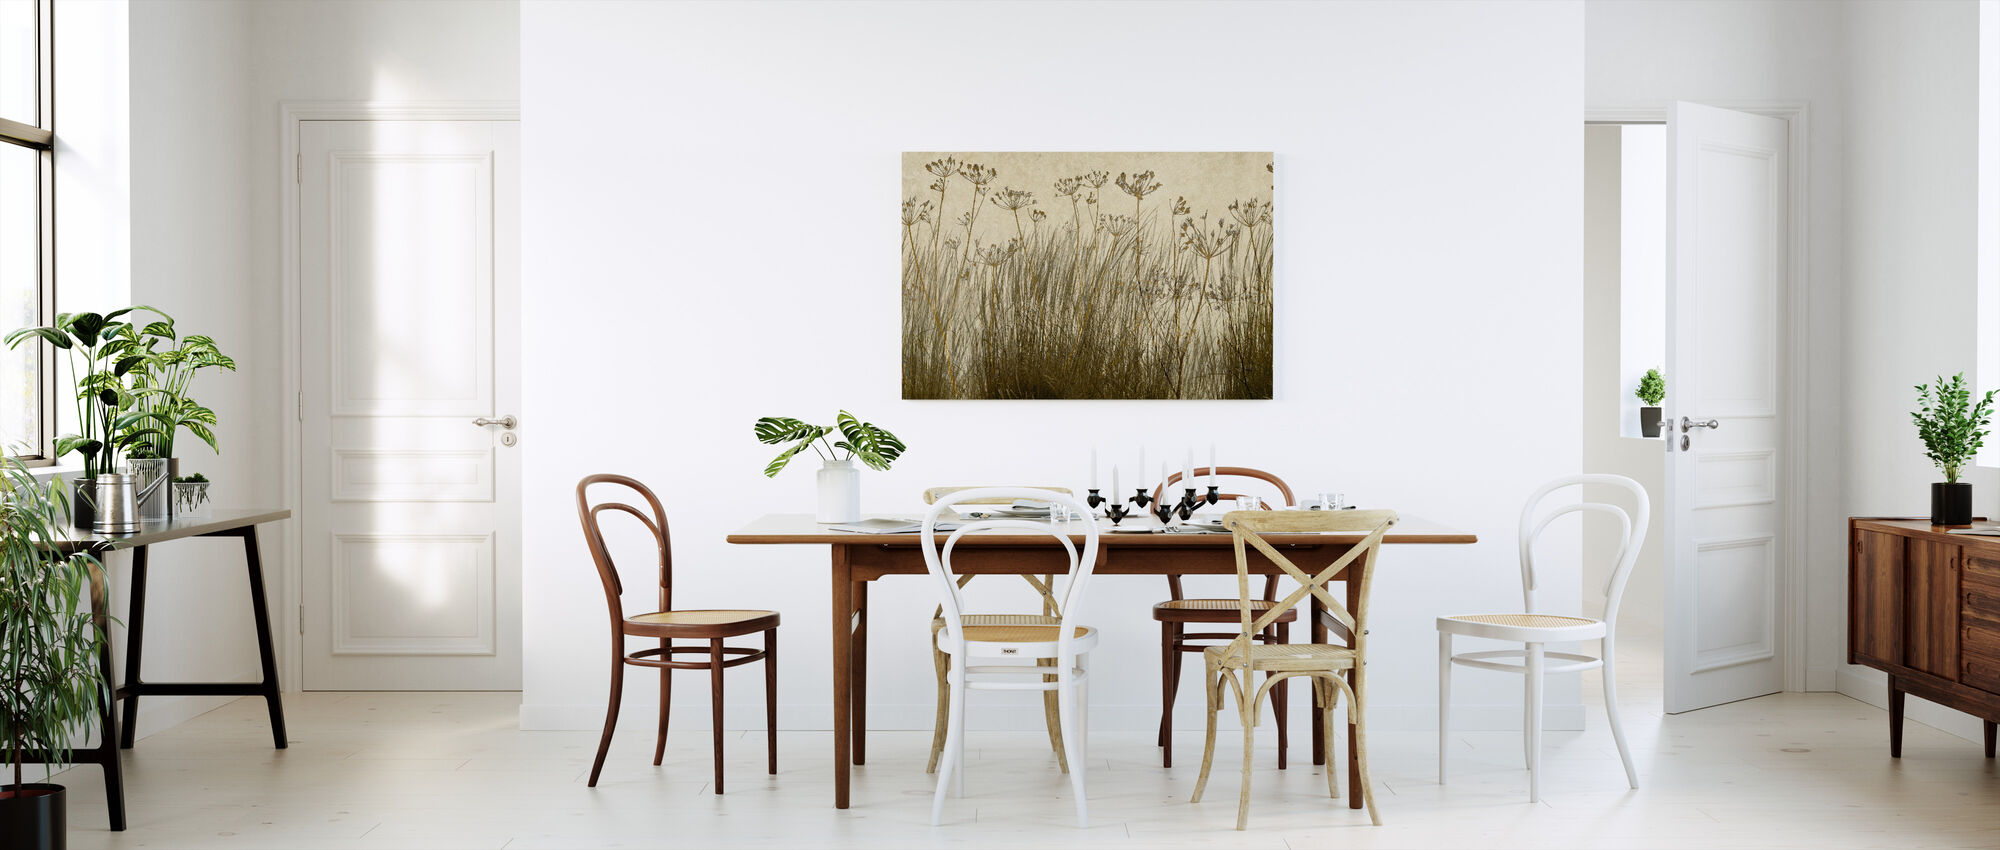 Golden Grass Silhouette - Canvas print - Kitchen